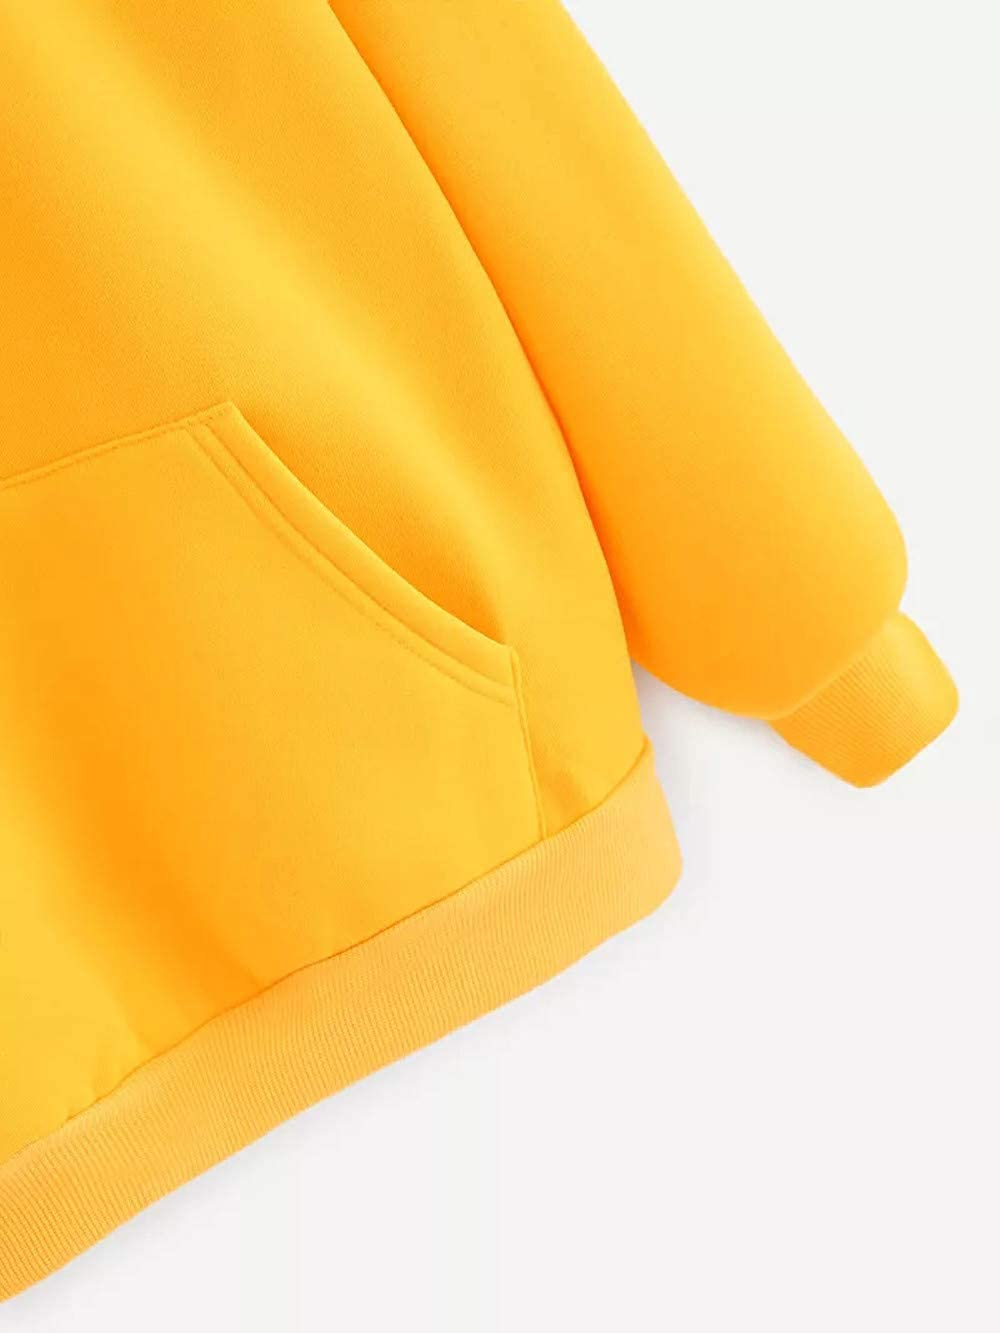 Womens Girls Long Sleeve Hoodie Yellow Hooded Sweatshirt Pullover Tops Blouse with Pocket at Amazon Womens Clothing store: